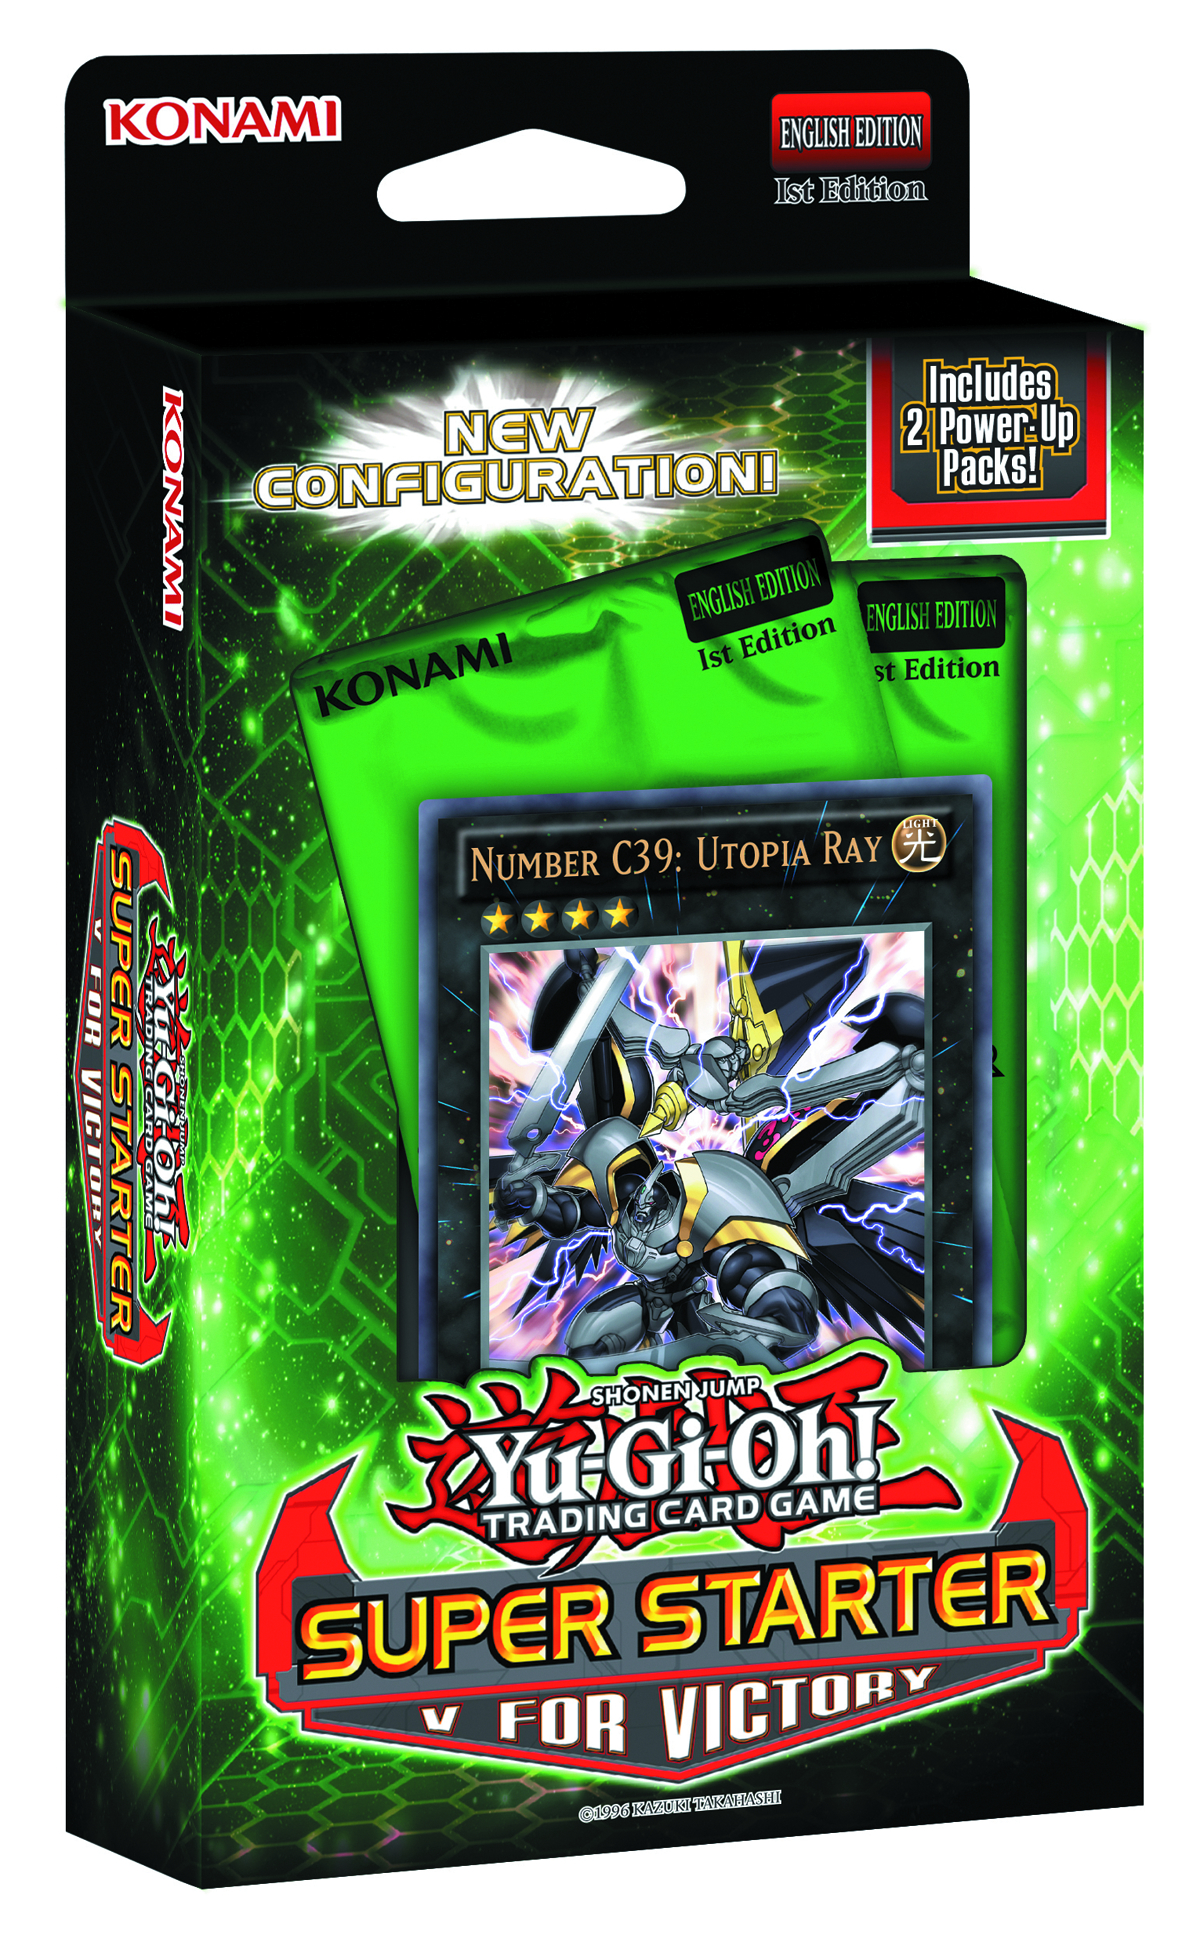 YU GI OH TCG V FOR VICTORY SUPER STARTER DECK DIS